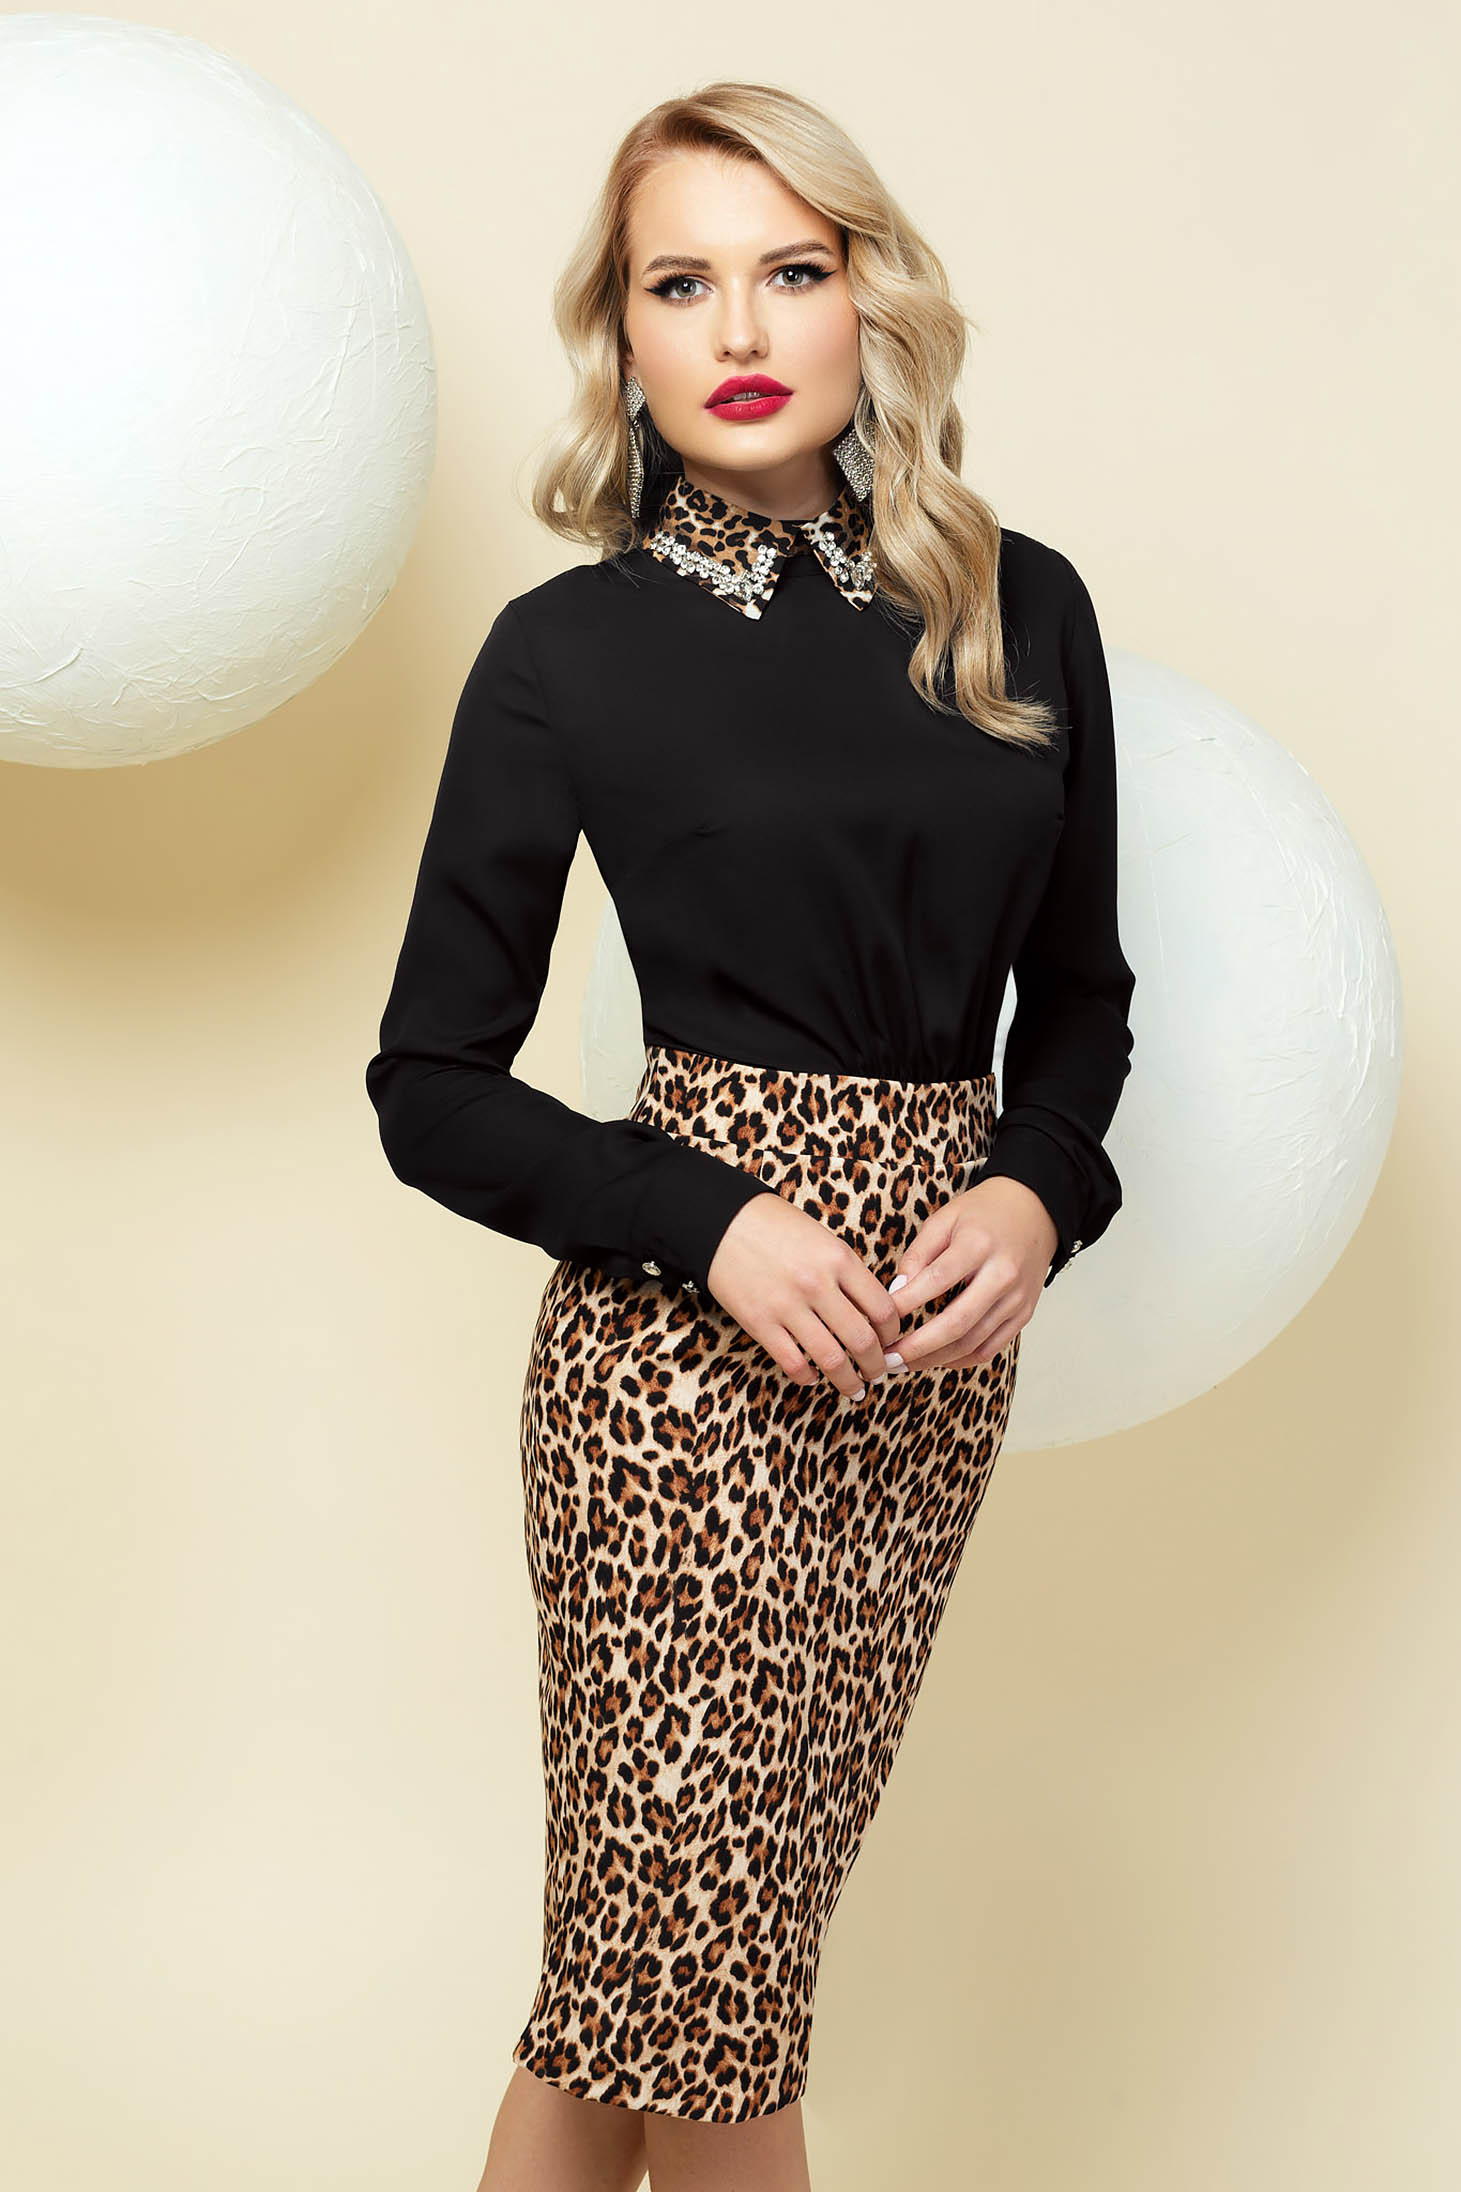 Midi occasional black dress pencil with animal print with collar with embellished accessories